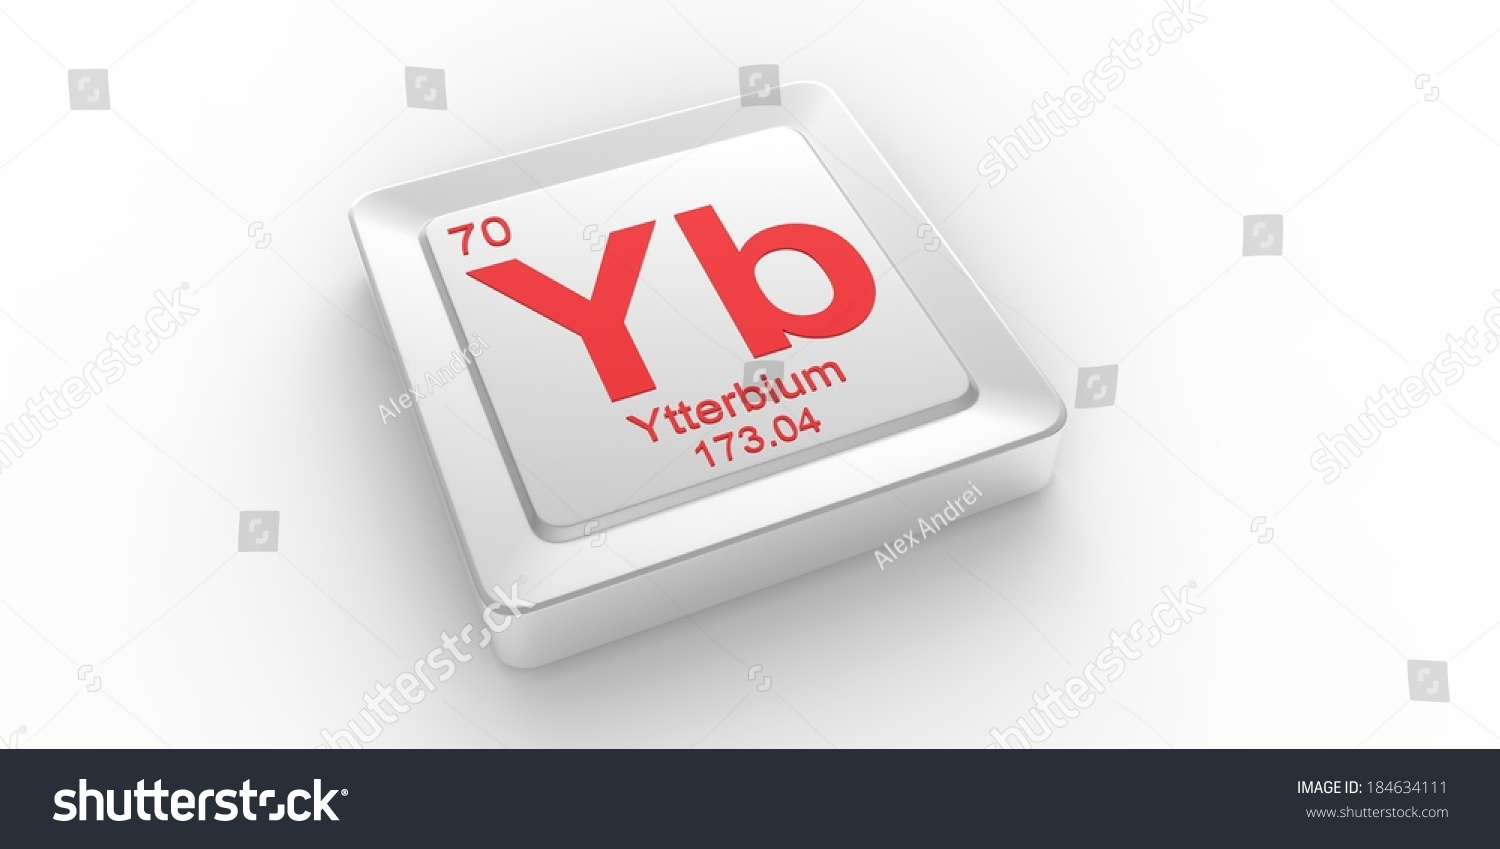 Yb symbol 70 material ytterbium chemical stock illustration yb symbol 70 material for ytterbium chemical element of the periodic table urtaz Gallery